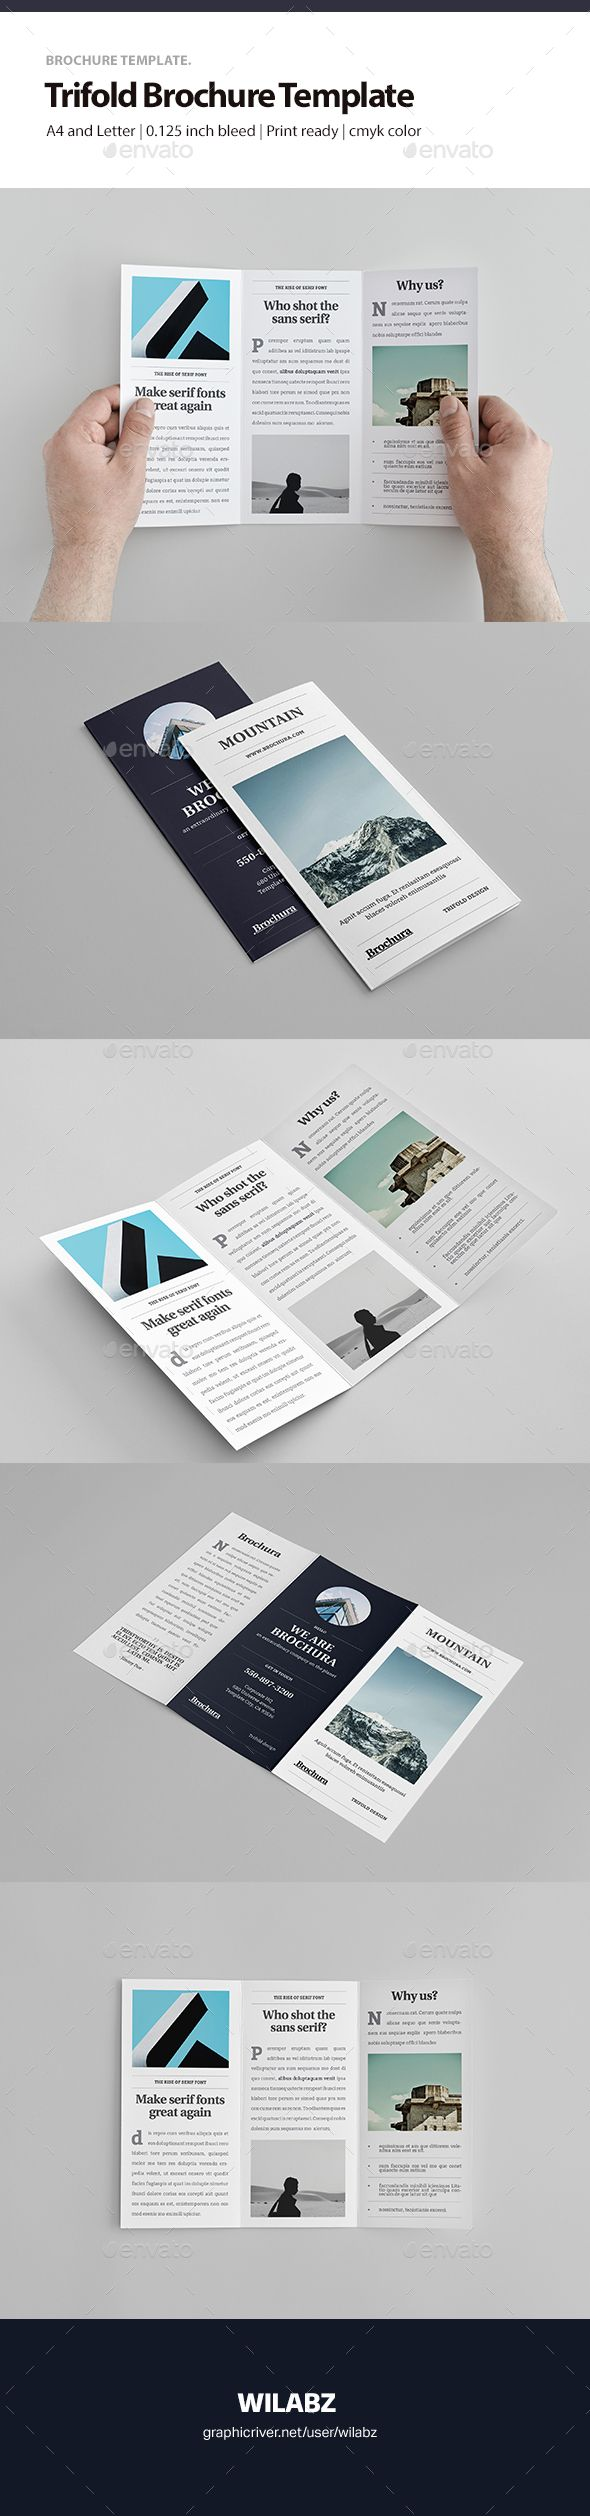 Trifold Brochure Template — InDesign INDD #a4 #brochure template • Download ➝ https://graphicriver.net/item/trifold-brochure-template/19036529?ref=pxcr